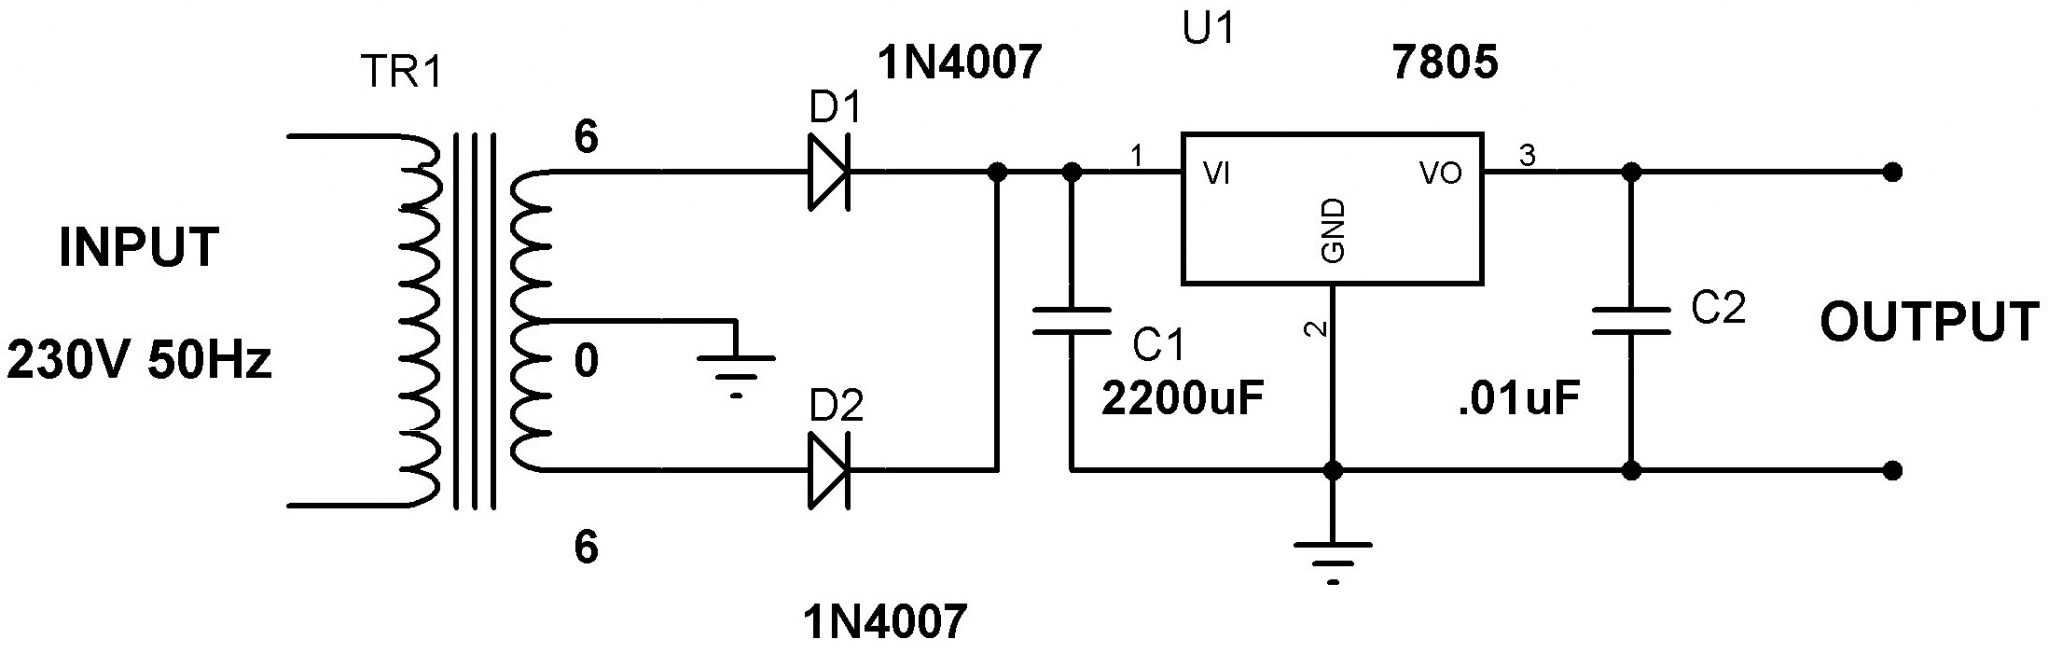 5v power supply using 7805 voltage regulator with design rh electrosome com schematic diagram power supply pc schematic diagram power supply 12v